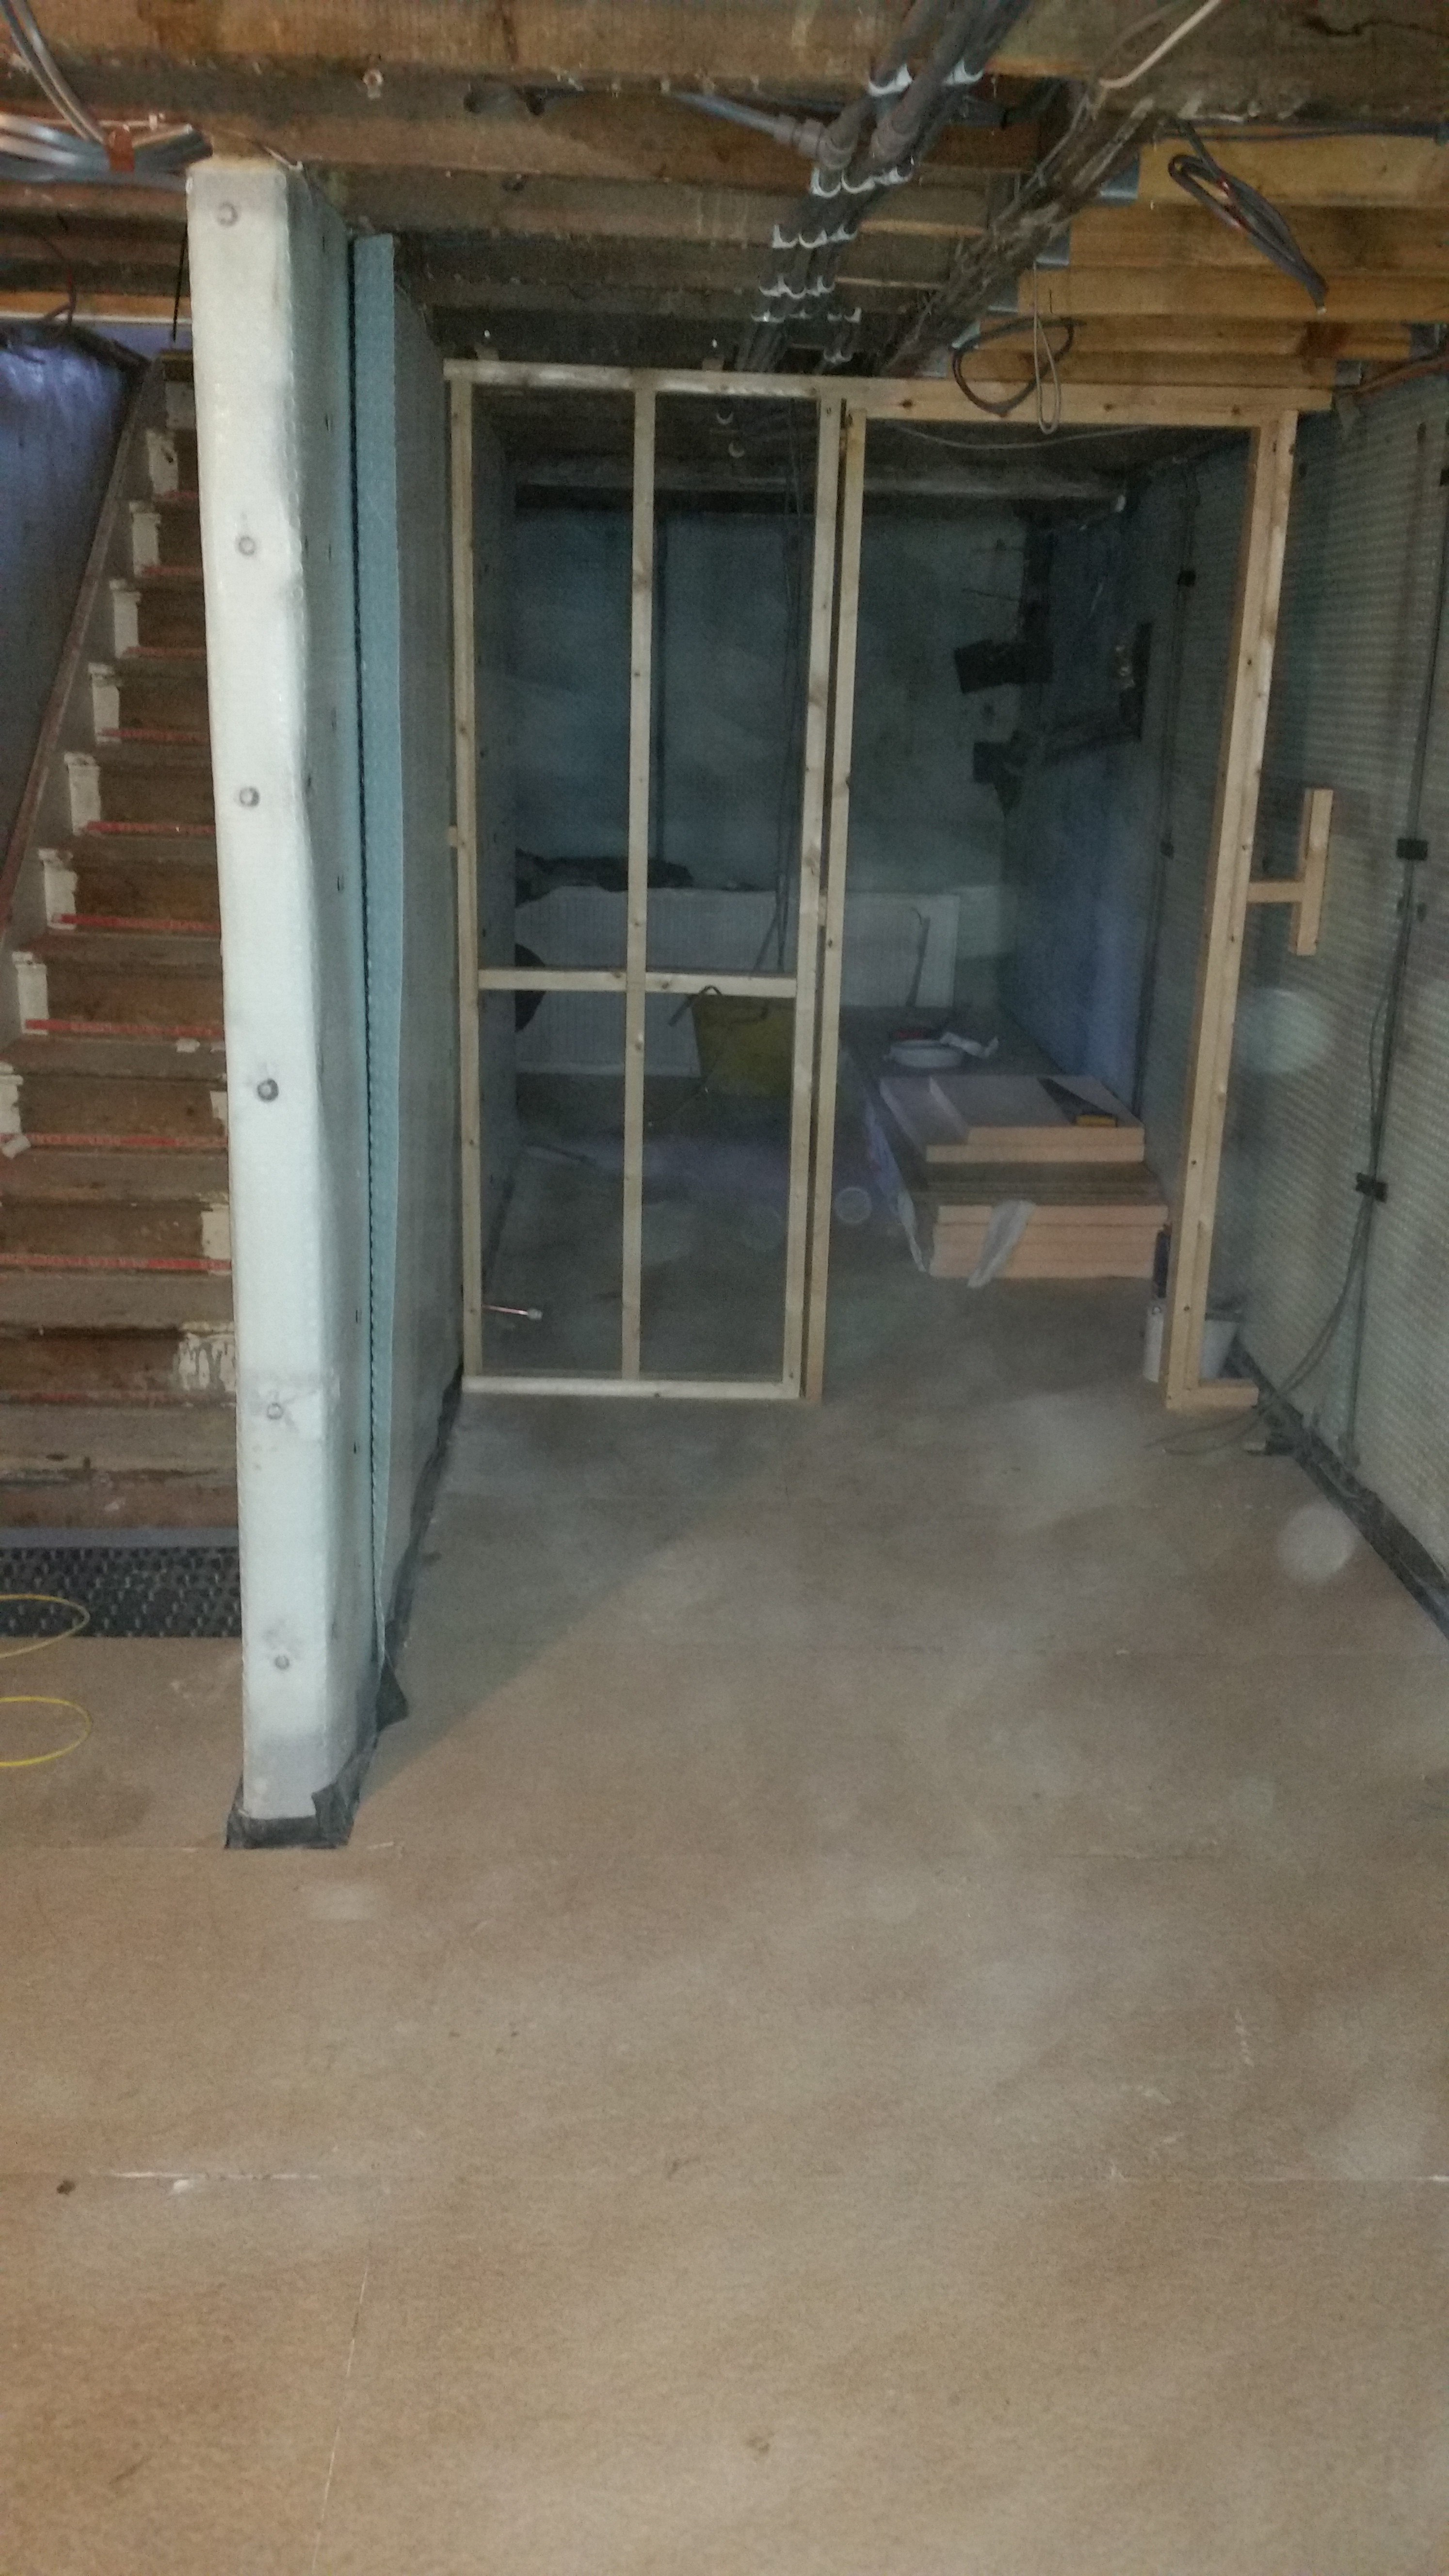 Basement Study Room: Basement Conversion In Harrogate To Home Study And Office